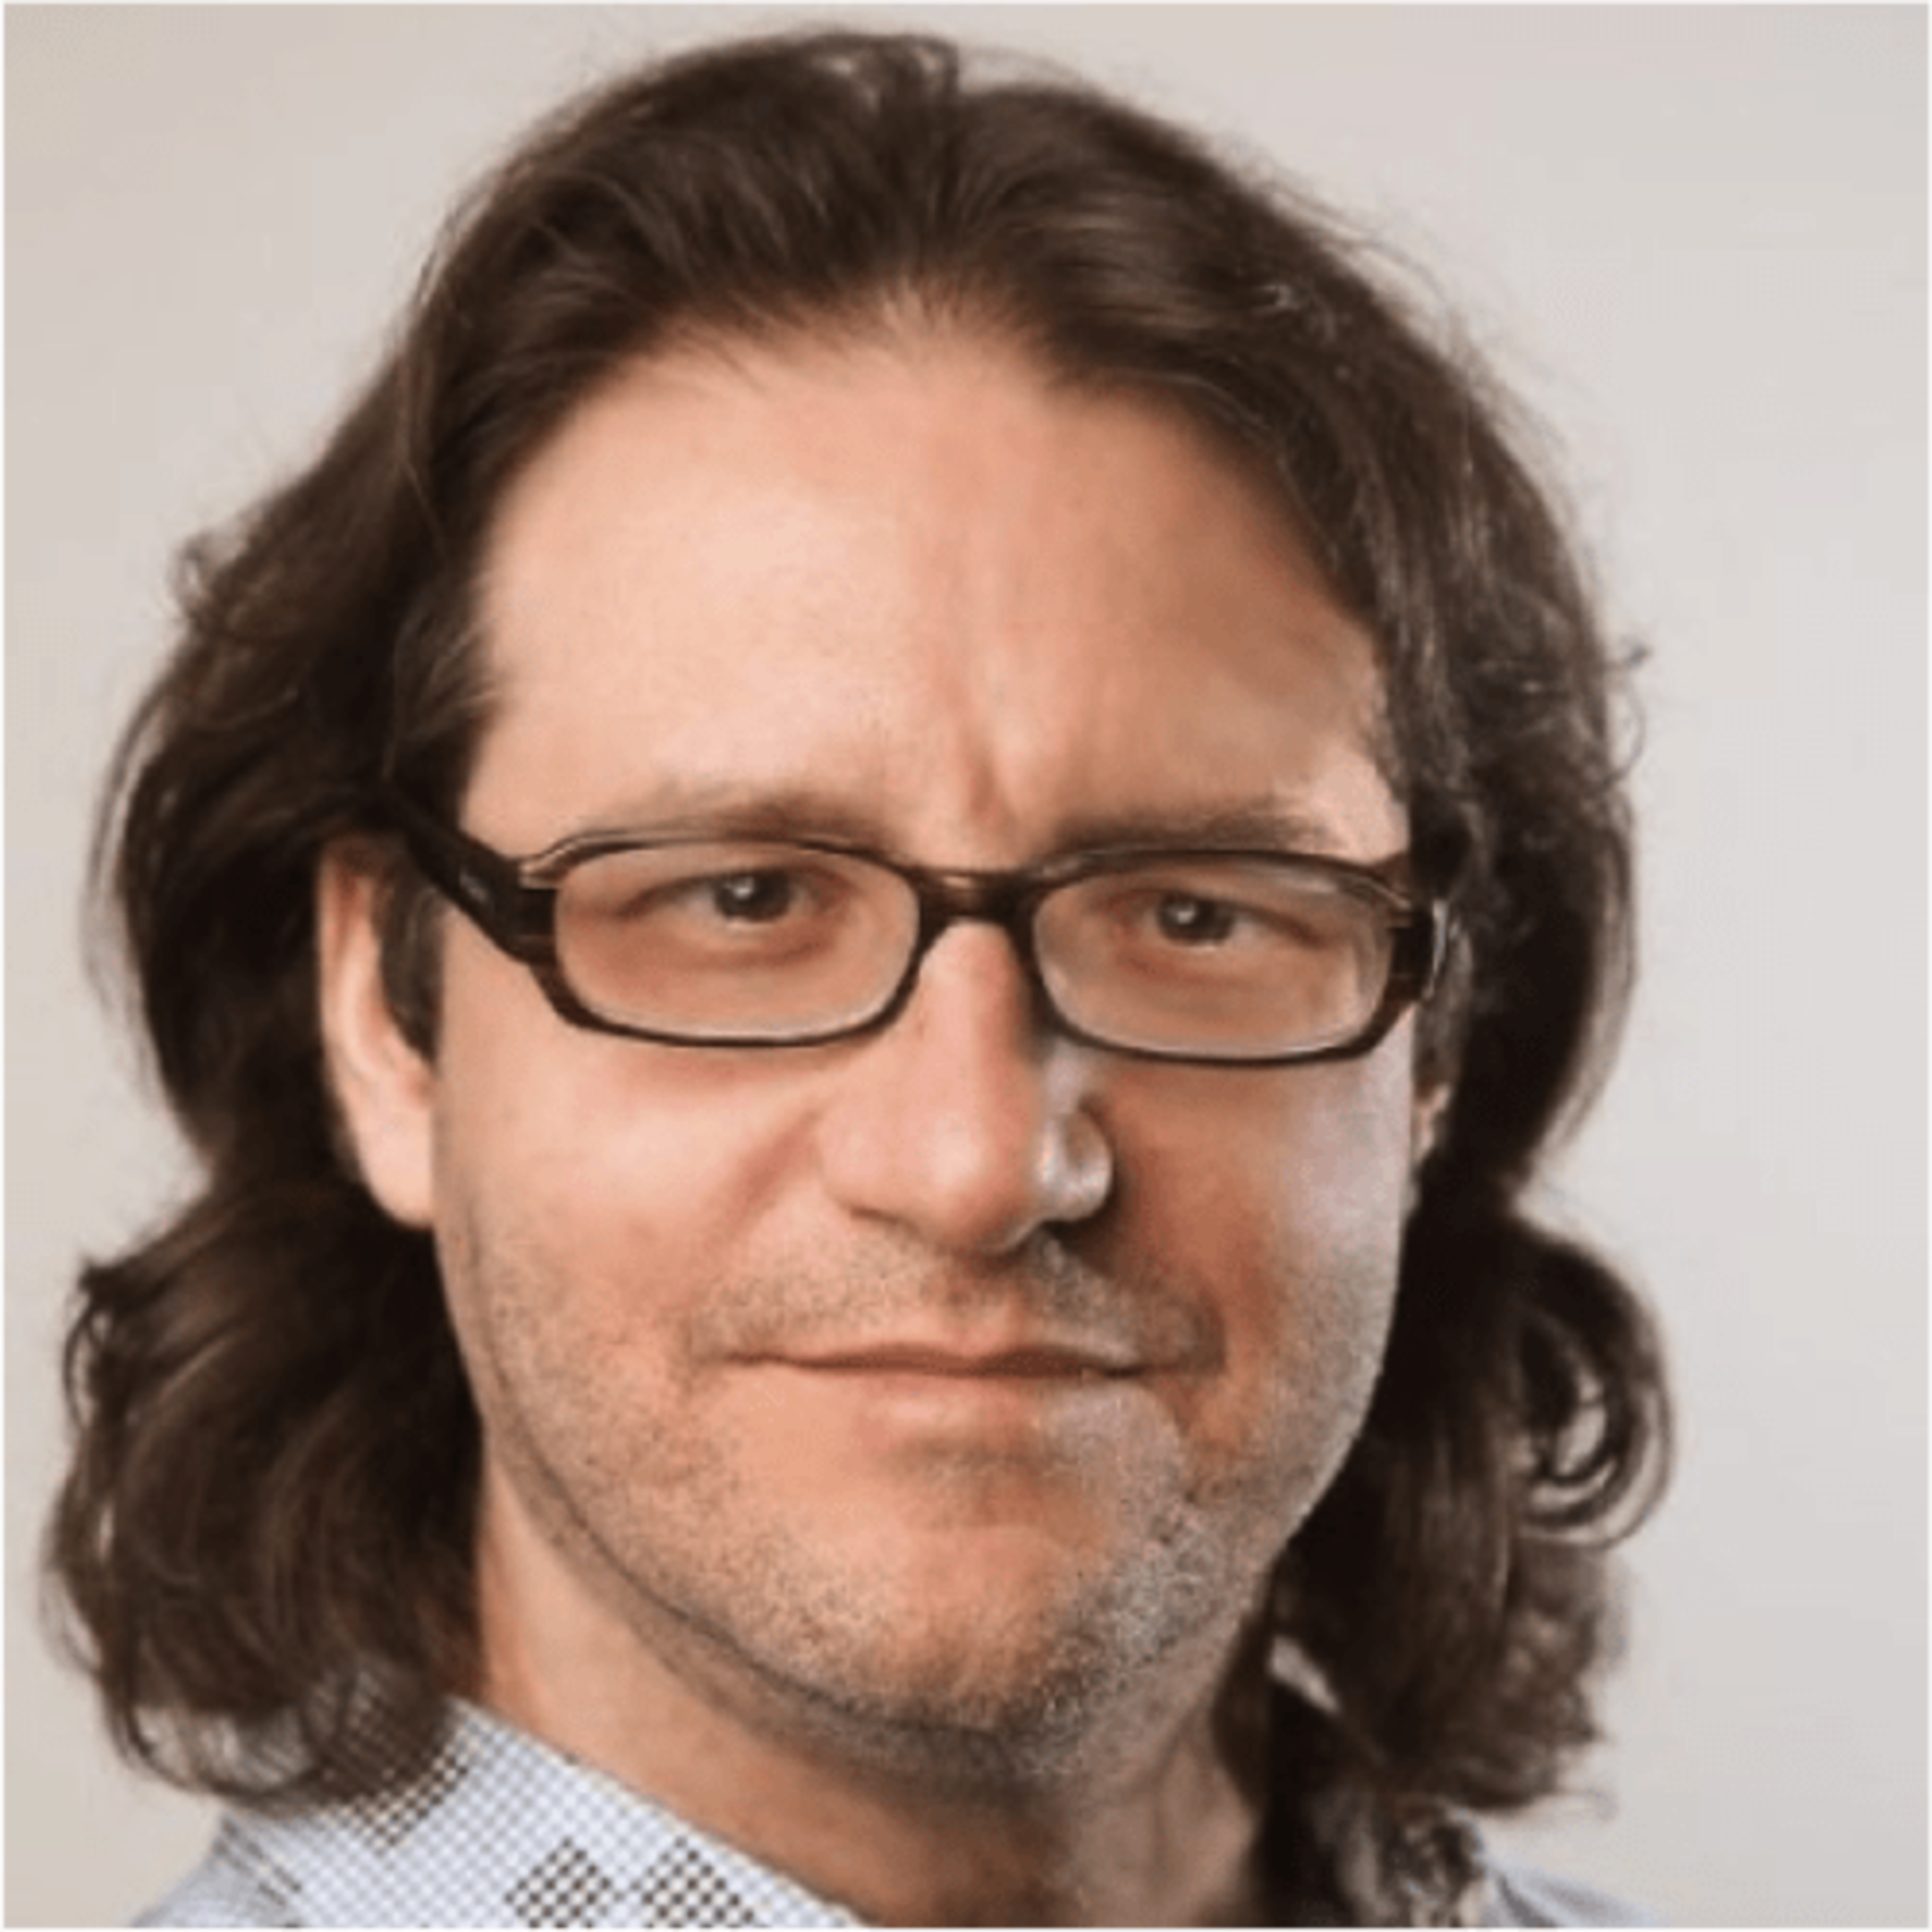 We are hosting Brad Feld, Investor, Entrepreneur, Author, Public Speaker and Co-Founder of Techstars